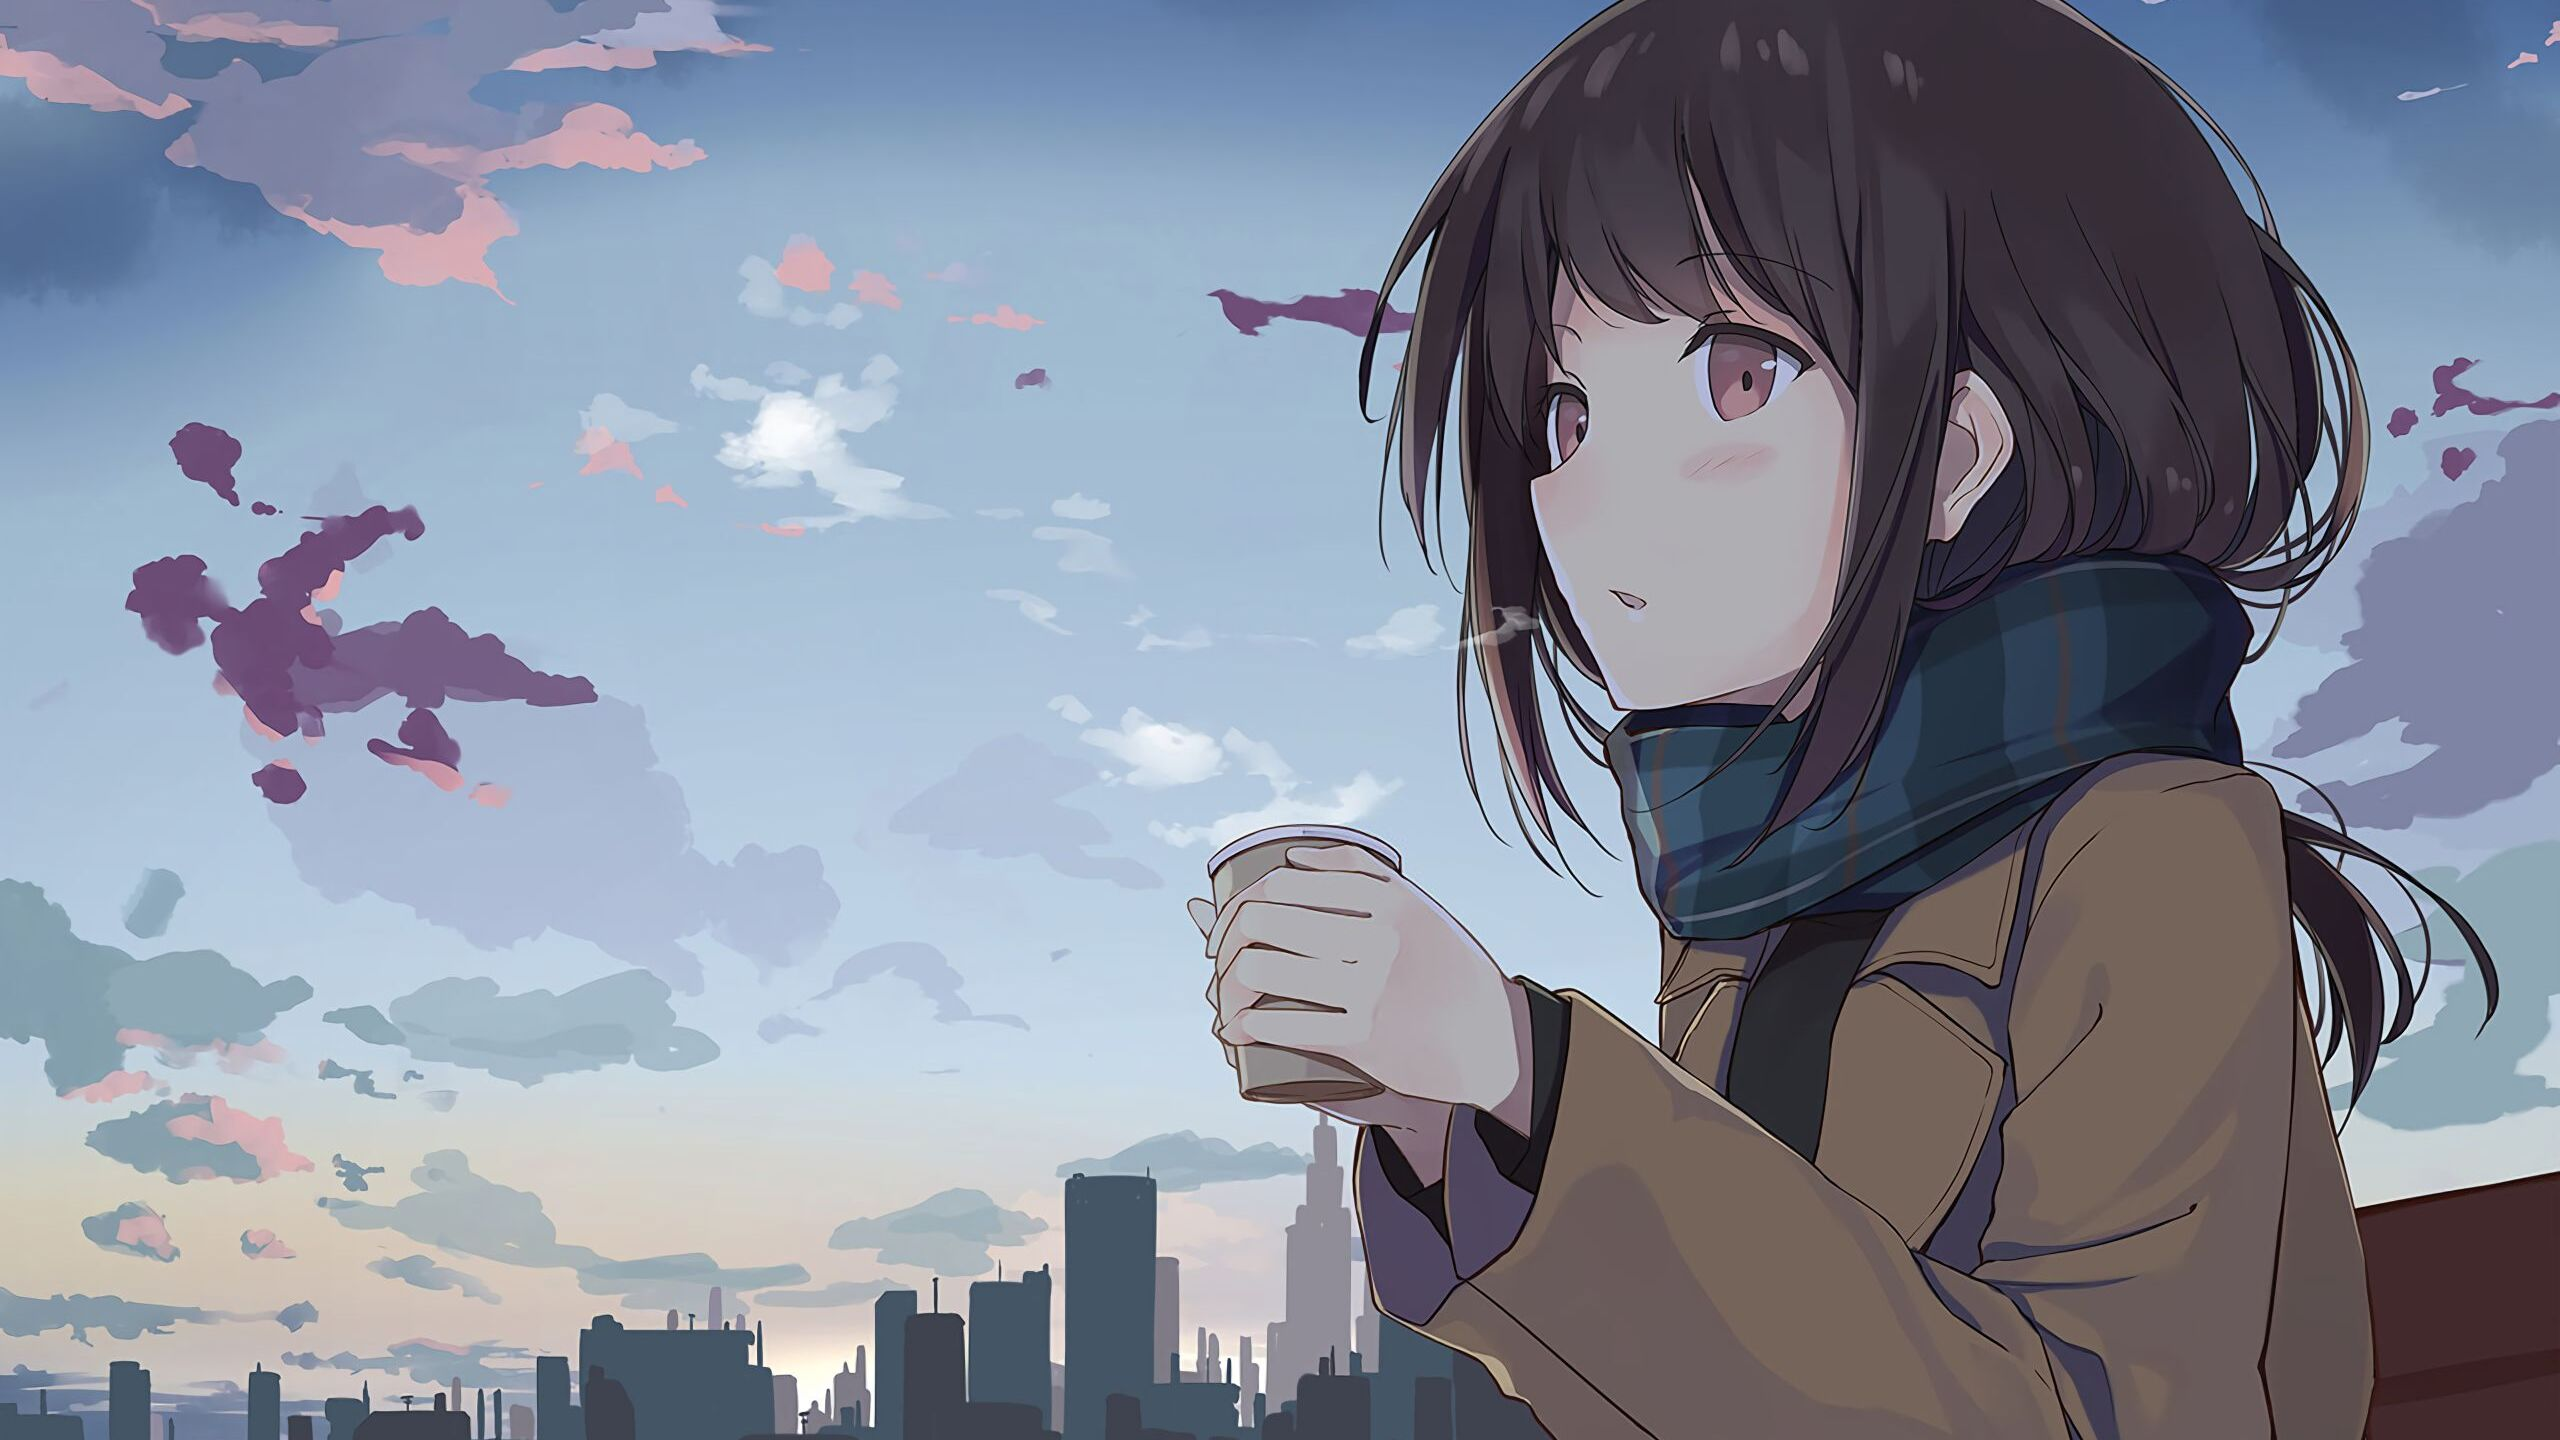 2560x1440 Anime Girl Cold Days 1440p Resolution Hd 4k Wallpapers Images Backgrounds Photos And Pictures